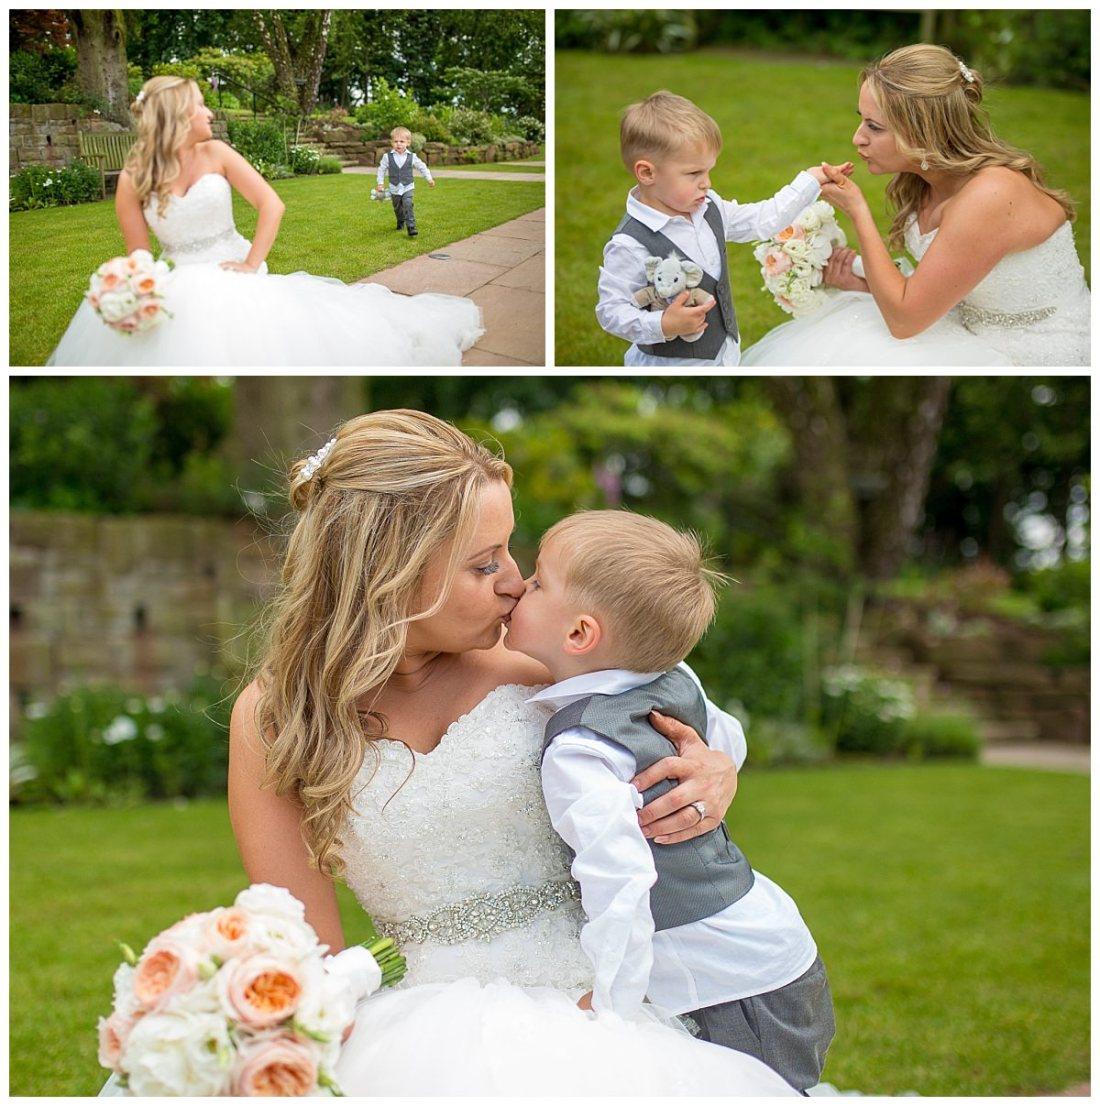 Natural Wedding Photography - Mother and Son